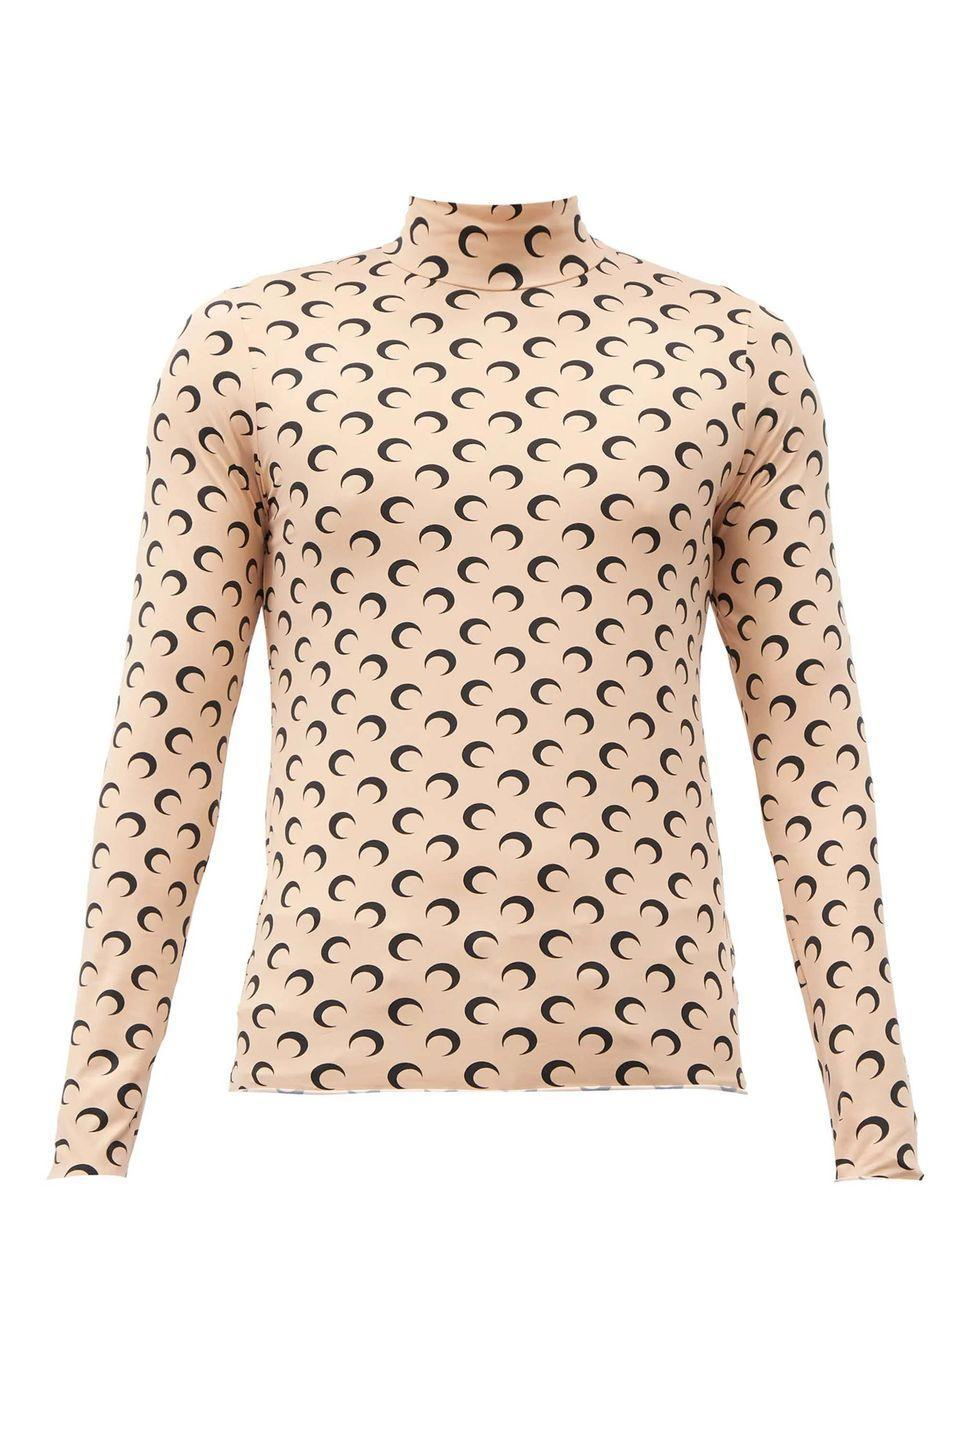 """<p><a class=""""link rapid-noclick-resp"""" href=""""https://go.redirectingat.com?id=127X1599956&url=https%3A%2F%2Fwww.matchesfashion.com%2Fproducts%2F1367739&sref=https%3A%2F%2Fwww.harpersbazaar.com%2Fuk%2Ffashion%2Ffashion-news%2Fg34504089%2Fhottest-products-2020%2F"""" rel=""""nofollow noopener"""" target=""""_blank"""" data-ylk=""""slk:SHOP NOW"""">SHOP NOW</a></p><p>Marine Serre has made its first appearance on the Lyst round-up after demand for the brand increased 83 per cent. </p><p>""""Following the release of the Black is King film and after being worn by celebrities including Beyoncé and Adele, searches for the brand's crescent moon print top spiked 426 per cent – resulting in it taking second place in this quarter's hottest women's product list.""""</p><p>Top, £265, <a href=""""https://go.redirectingat.com?id=127X1599956&url=https%3A%2F%2Fwww.matchesfashion.com%2Fproducts%2F1367739&sref=https%3A%2F%2Fwww.harpersbazaar.com%2Fuk%2Ffashion%2Ffashion-news%2Fg34504089%2Fhottest-products-2020%2F"""" rel=""""nofollow noopener"""" target=""""_blank"""" data-ylk=""""slk:Marine Serre"""" class=""""link rapid-noclick-resp"""">Marine Serre</a></p>"""